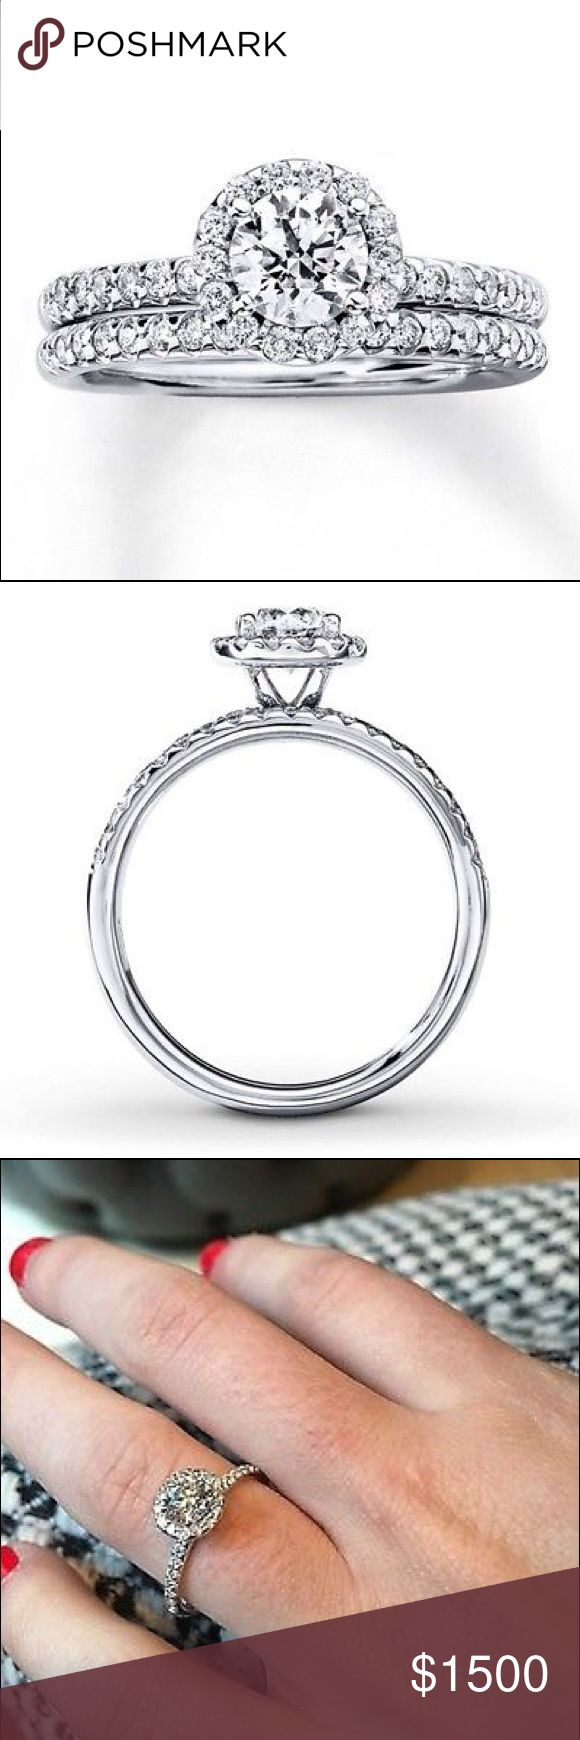 Sterling Jewelers .9 ct  14K White Gold Ring Absolutely stunning round cut halo diamond ring. Real stones. Comes with appraisal. Appraises for $3000. Wedding band not included. I'd be happy to answer any questions. Can't wait to find this ring a home. :) Jewelry Rings